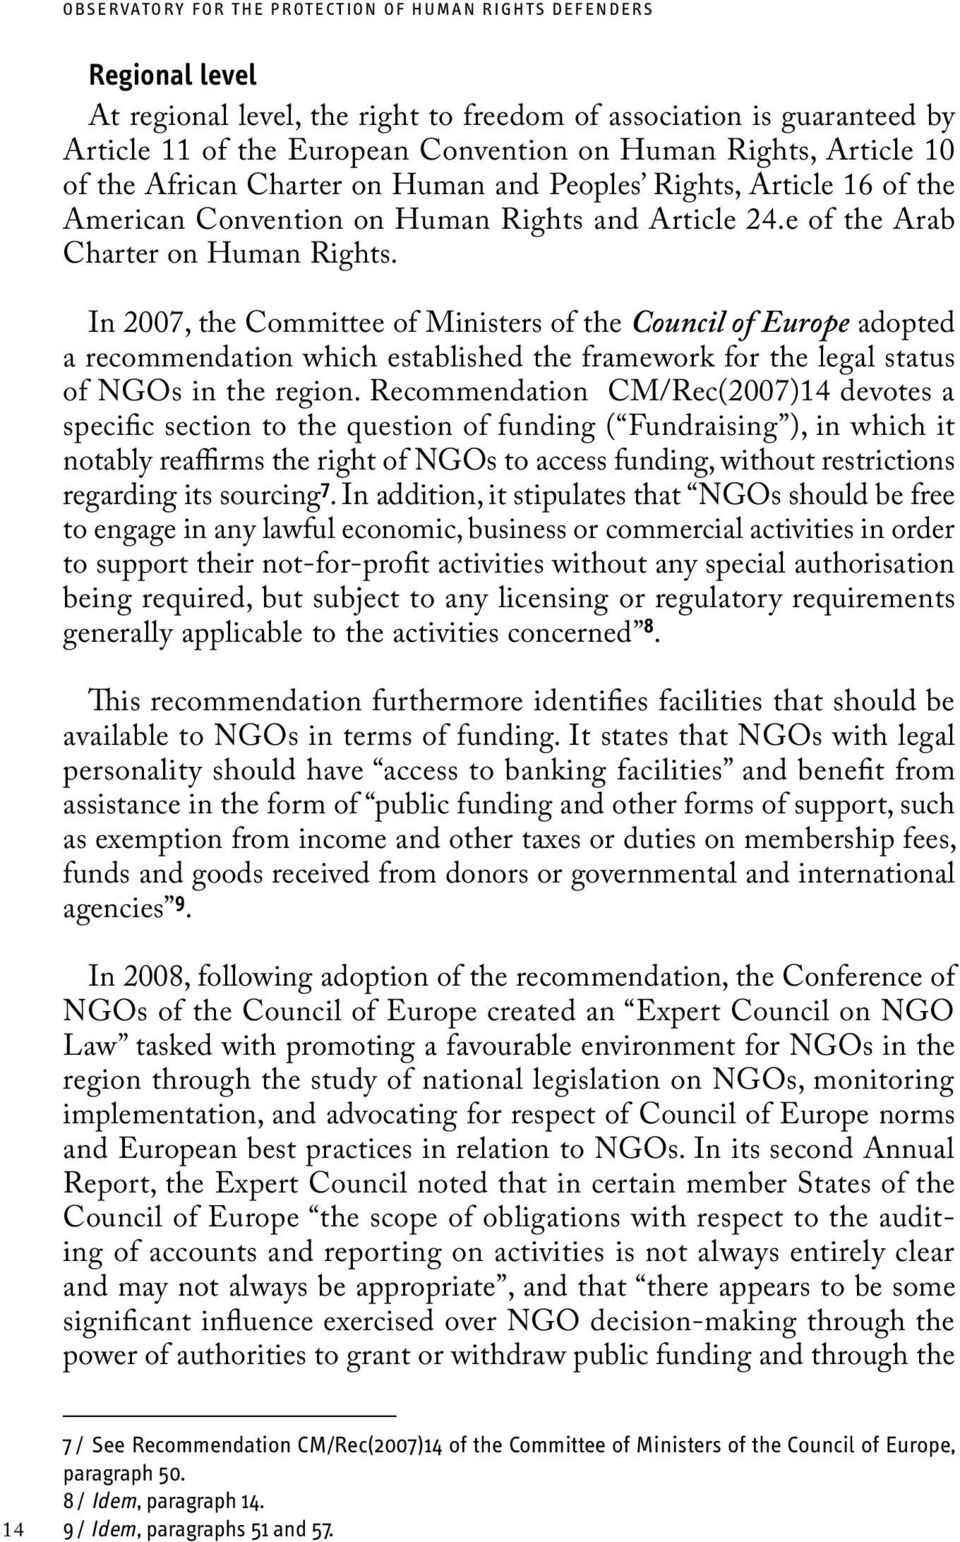 In 2007, the Committee of Ministers of the Council of Europe adopted a recommendation which established the framework for the legal status of NGOs in the region.